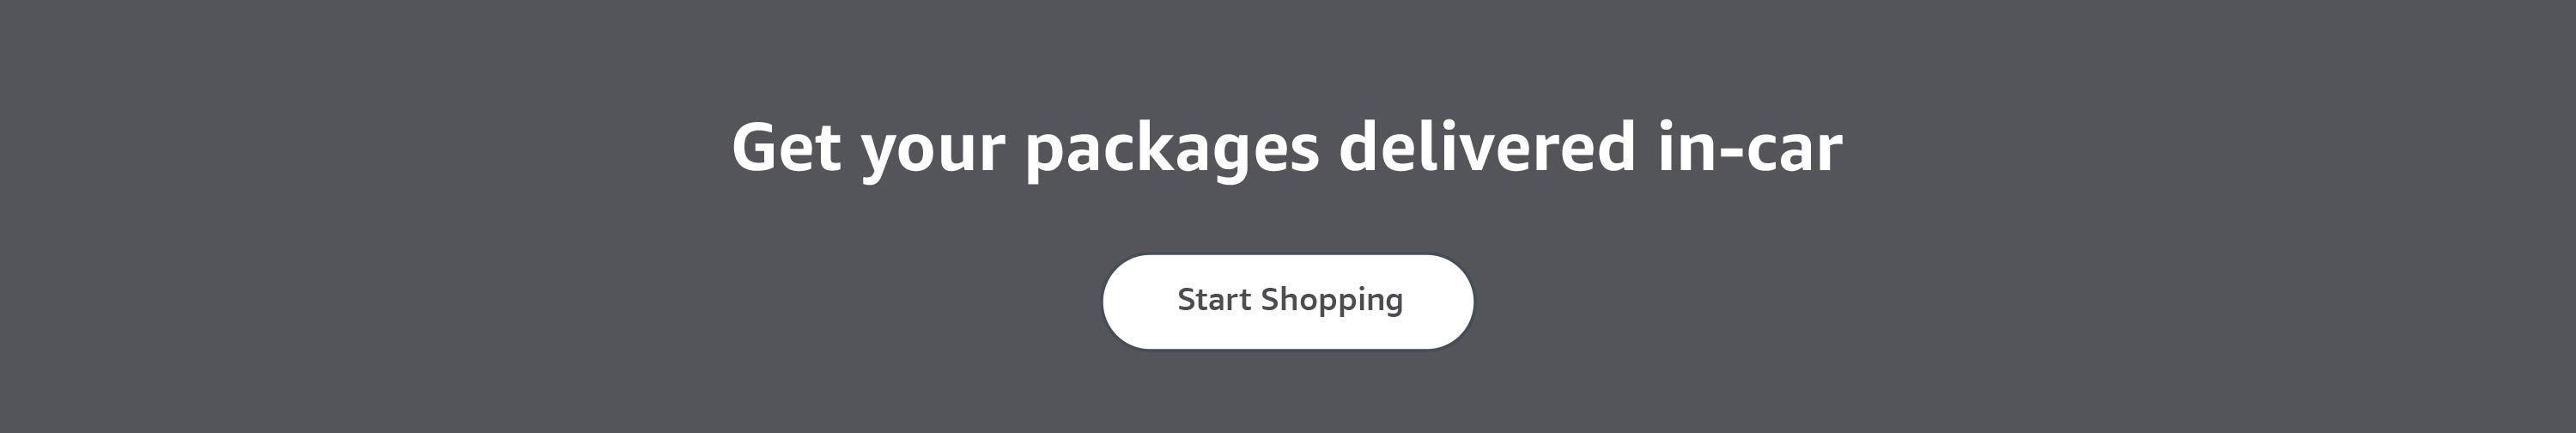 Get your packages delivered in-car